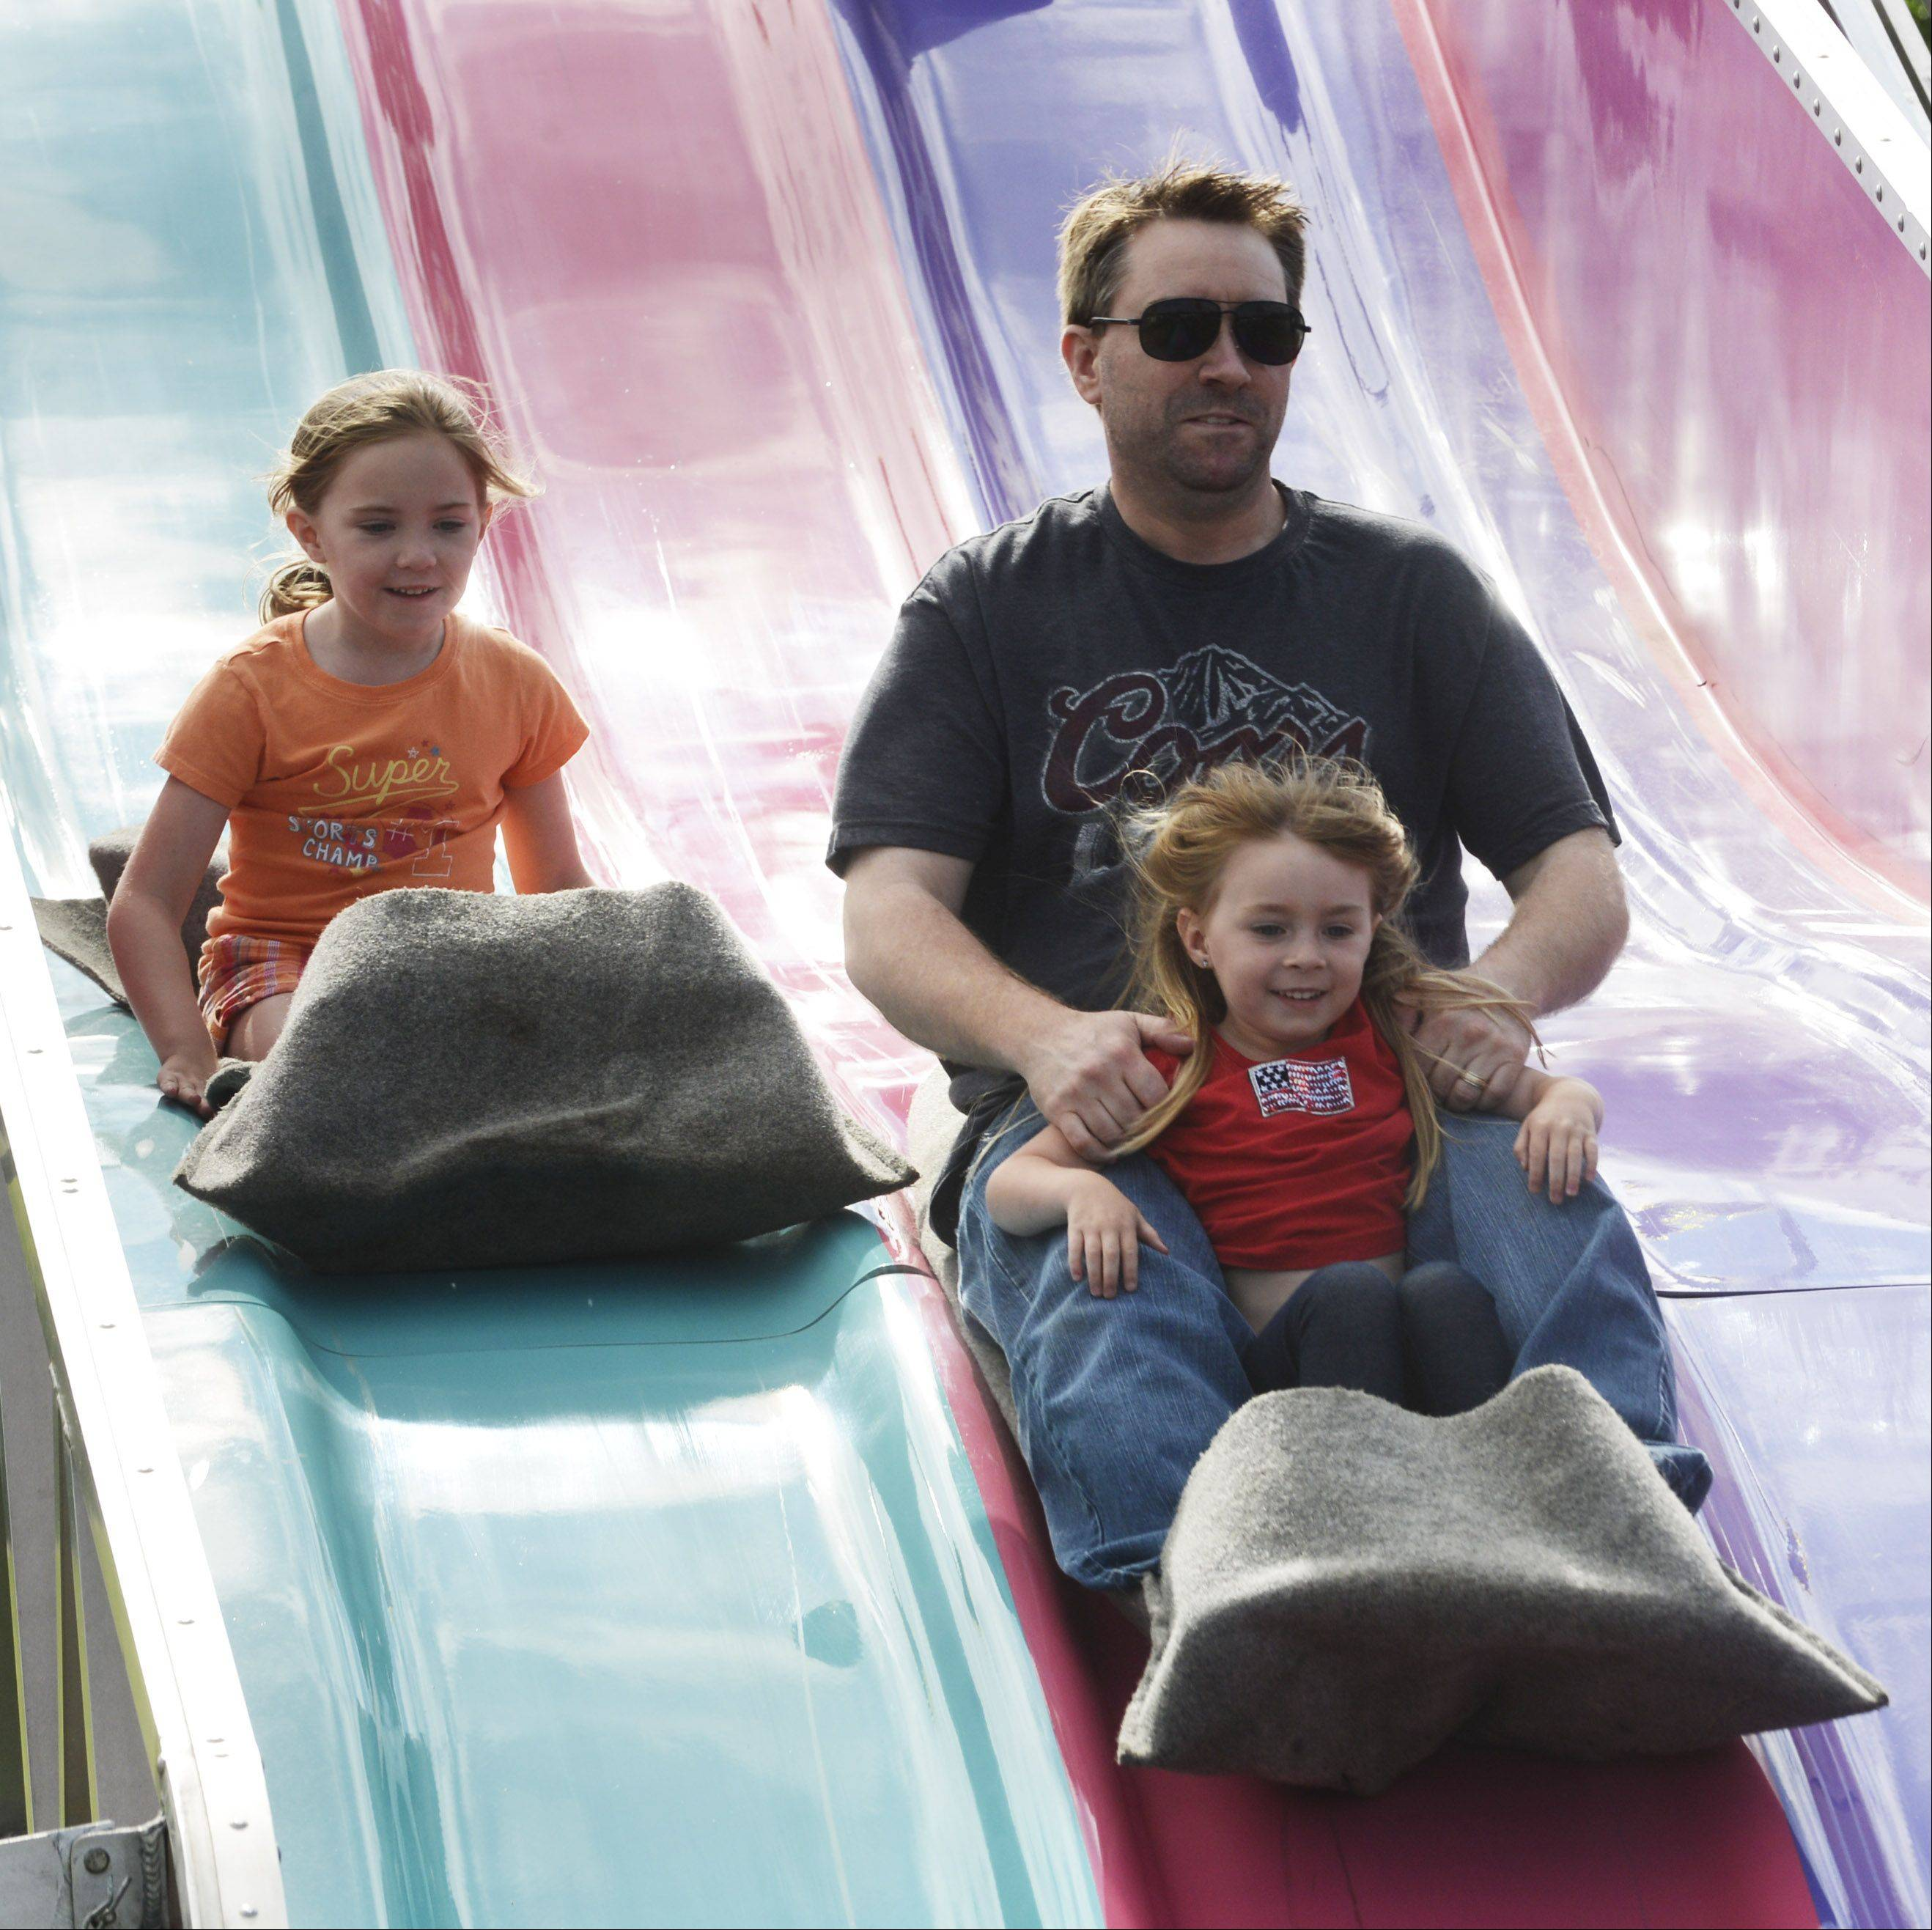 Alex Beagles, of Grayslake, rides the Fun Slide with daughters Sophia, 4, and Gabi, 7, during the Grayslake Family Picnic at Central Park in Grayslake Saturday.